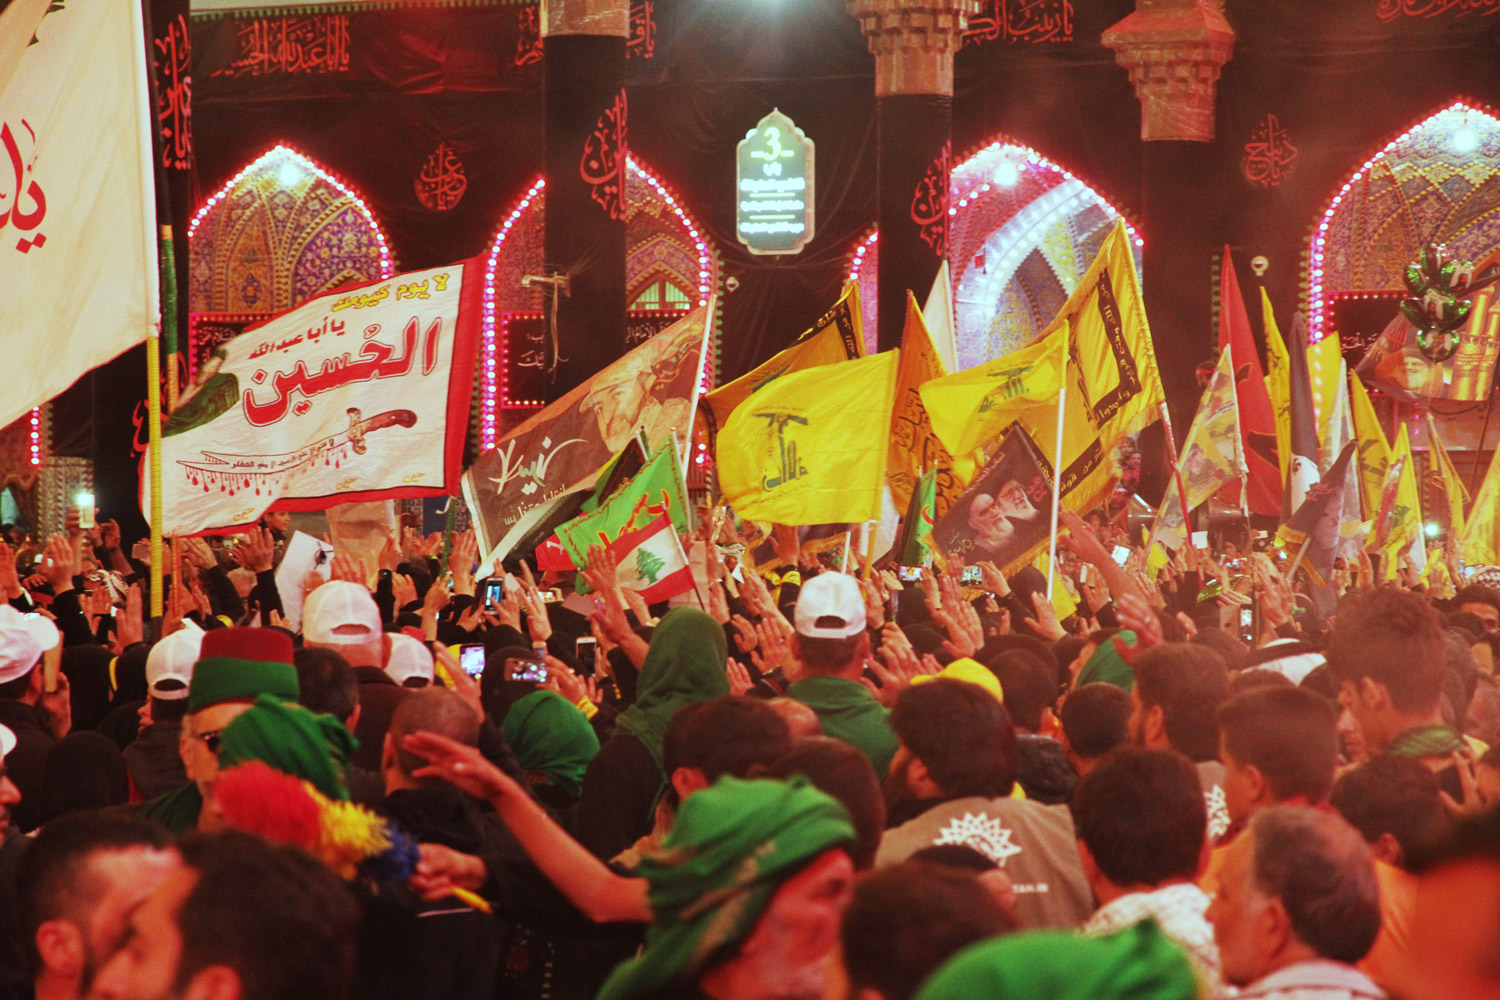 Hezbollah parading during the Arba'een Pilgrimage procession in Kerbelah, Iraq, November 2016.